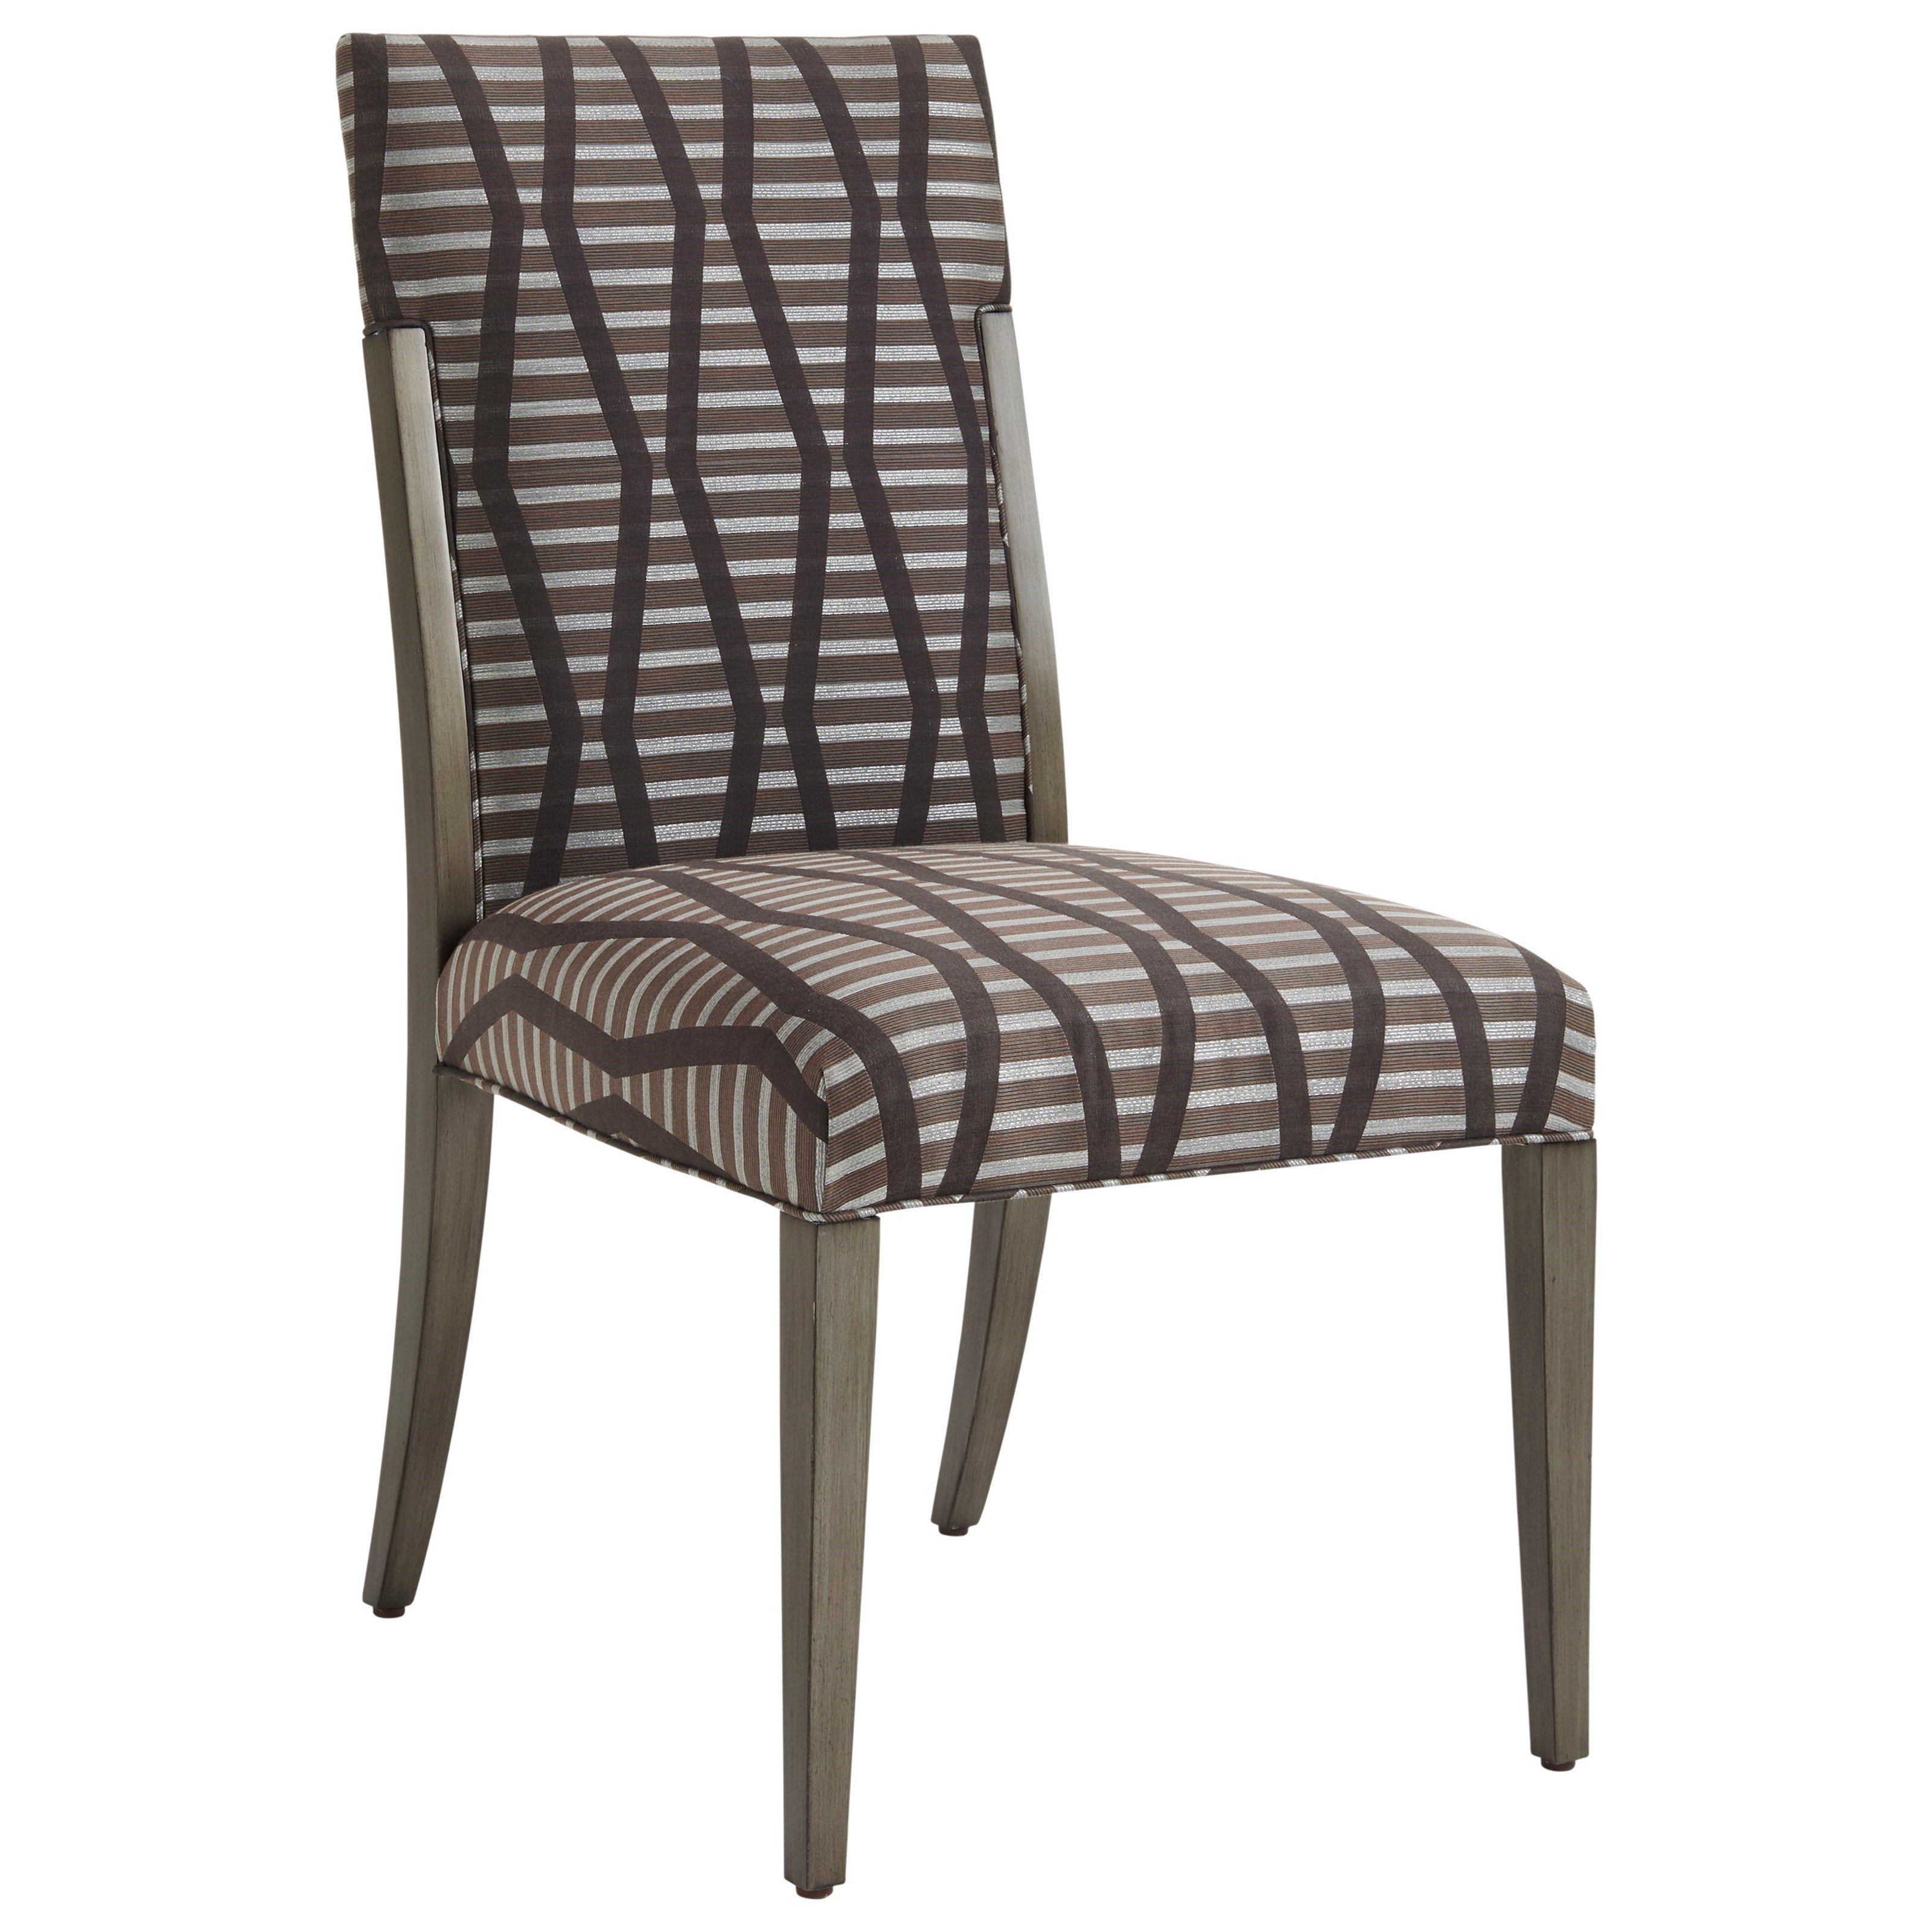 Ariana Saverne Upholstered Side Chair by Lexington at Sprintz Furniture